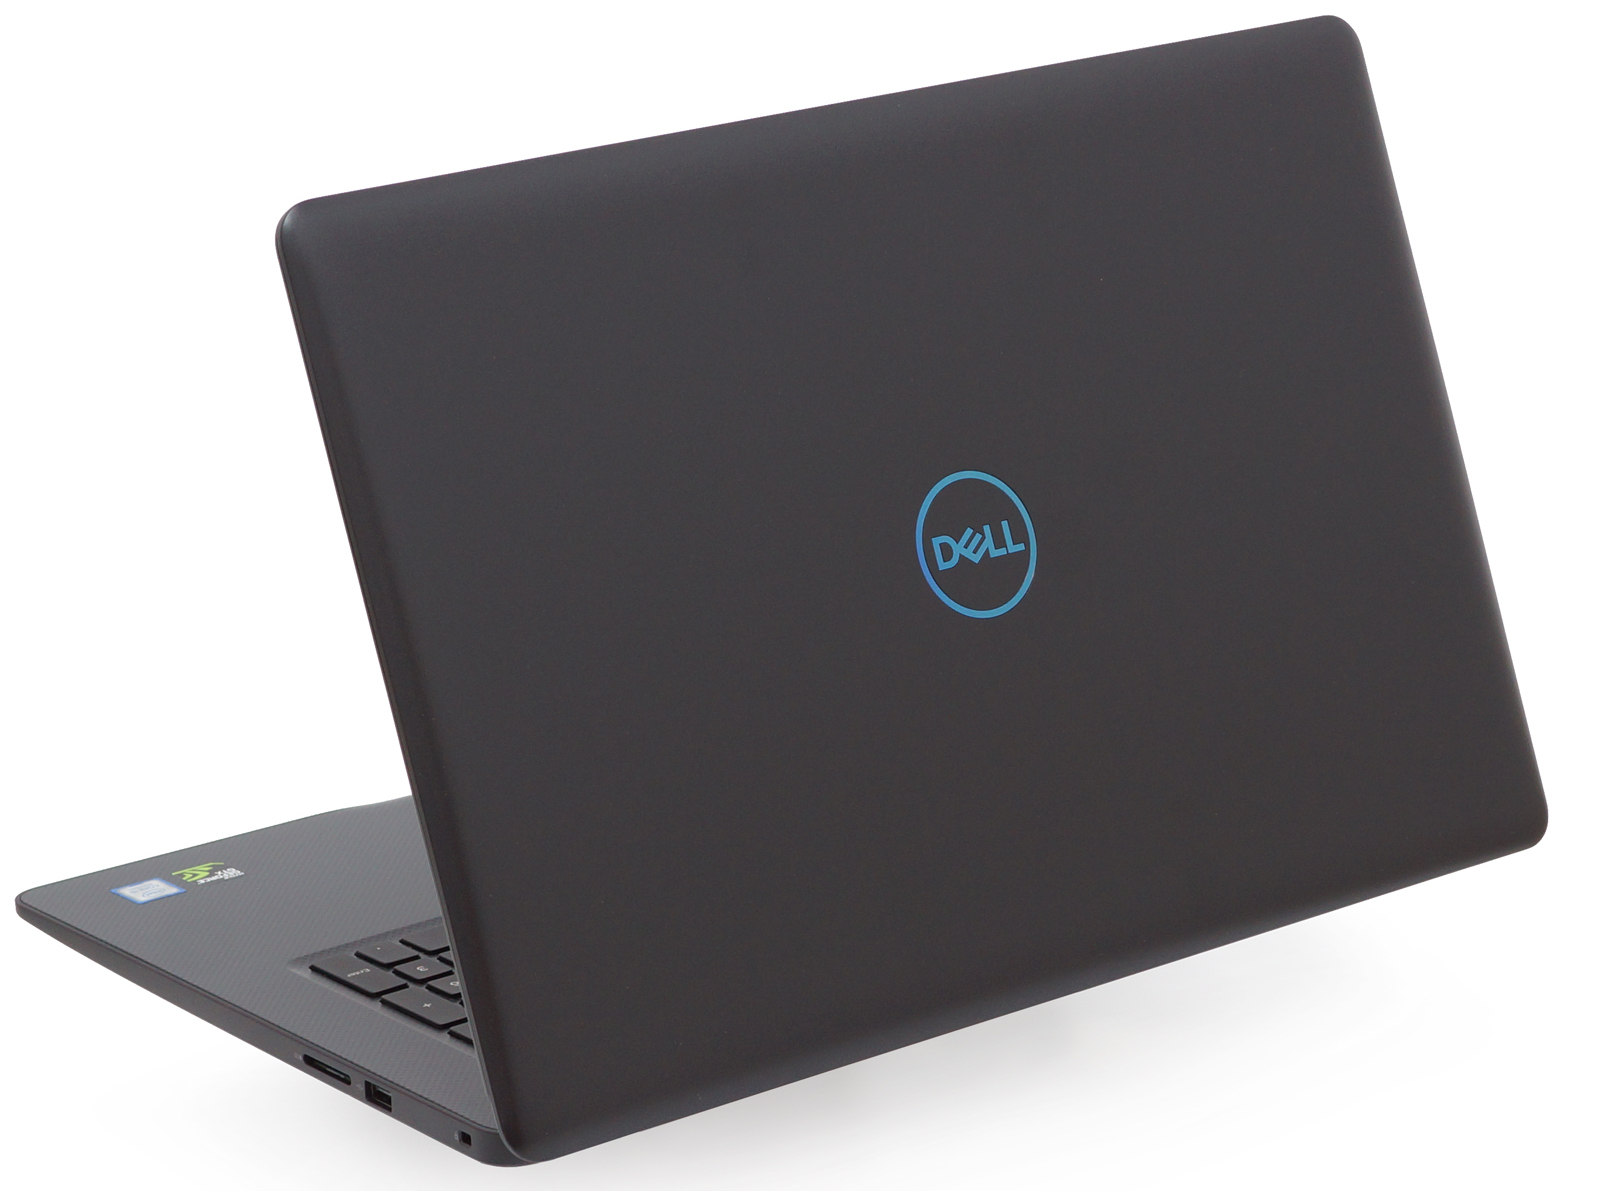 Dell G3 17 3779 review – is this the best value 17-inch